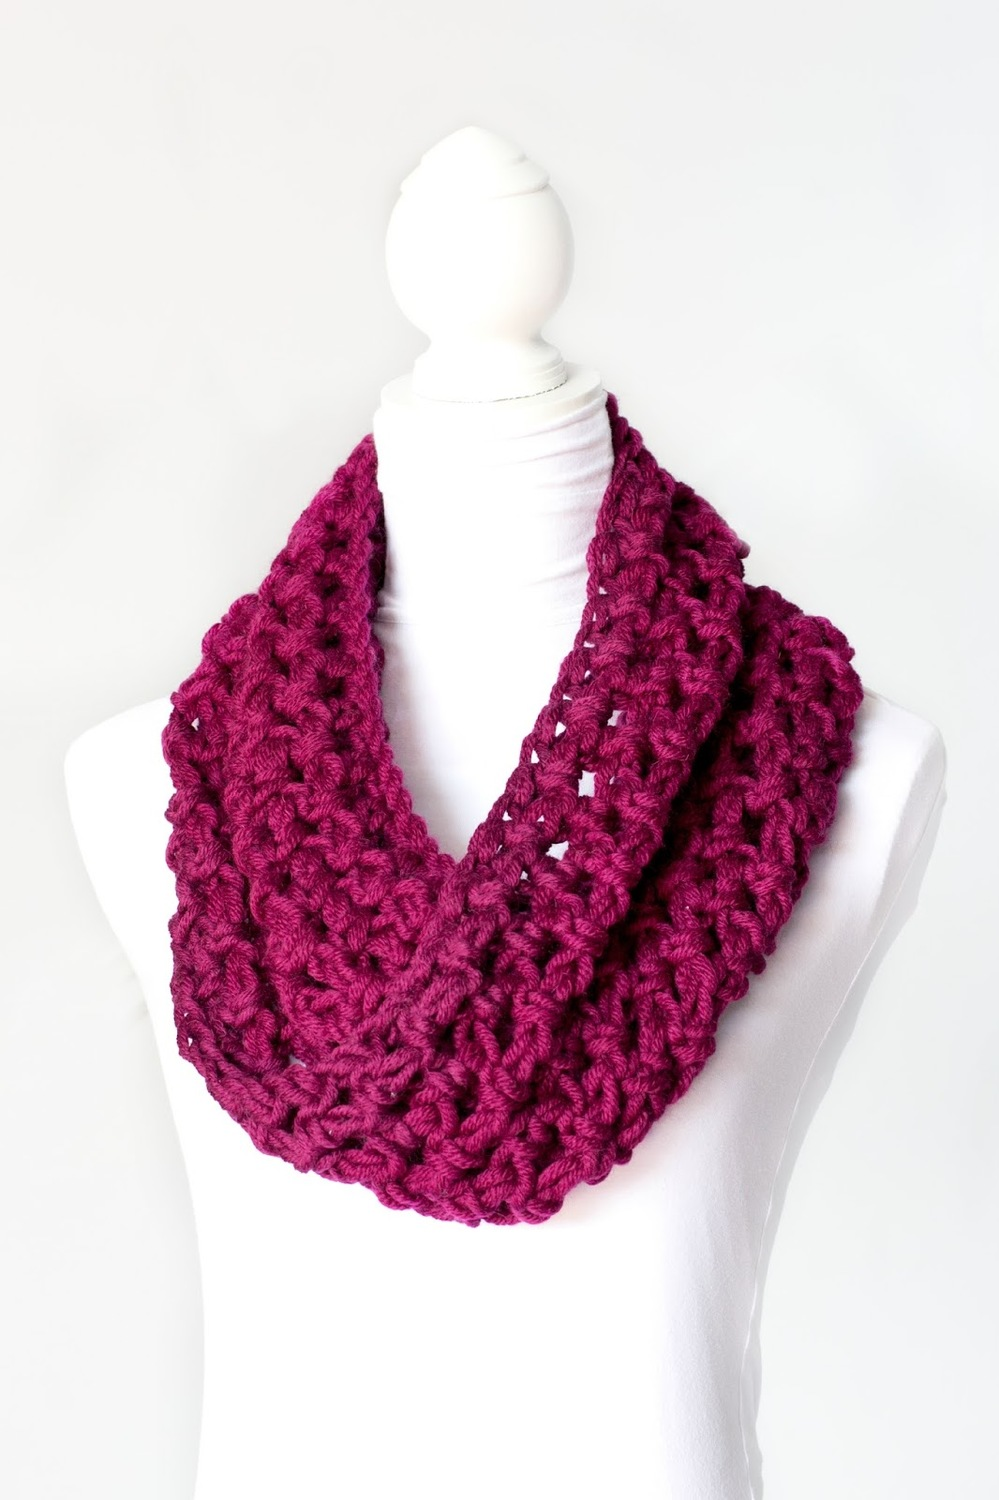 Crochet infinity scarf patterns and crochet cowls 26 patterns chunky crochet cowl bankloansurffo Image collections